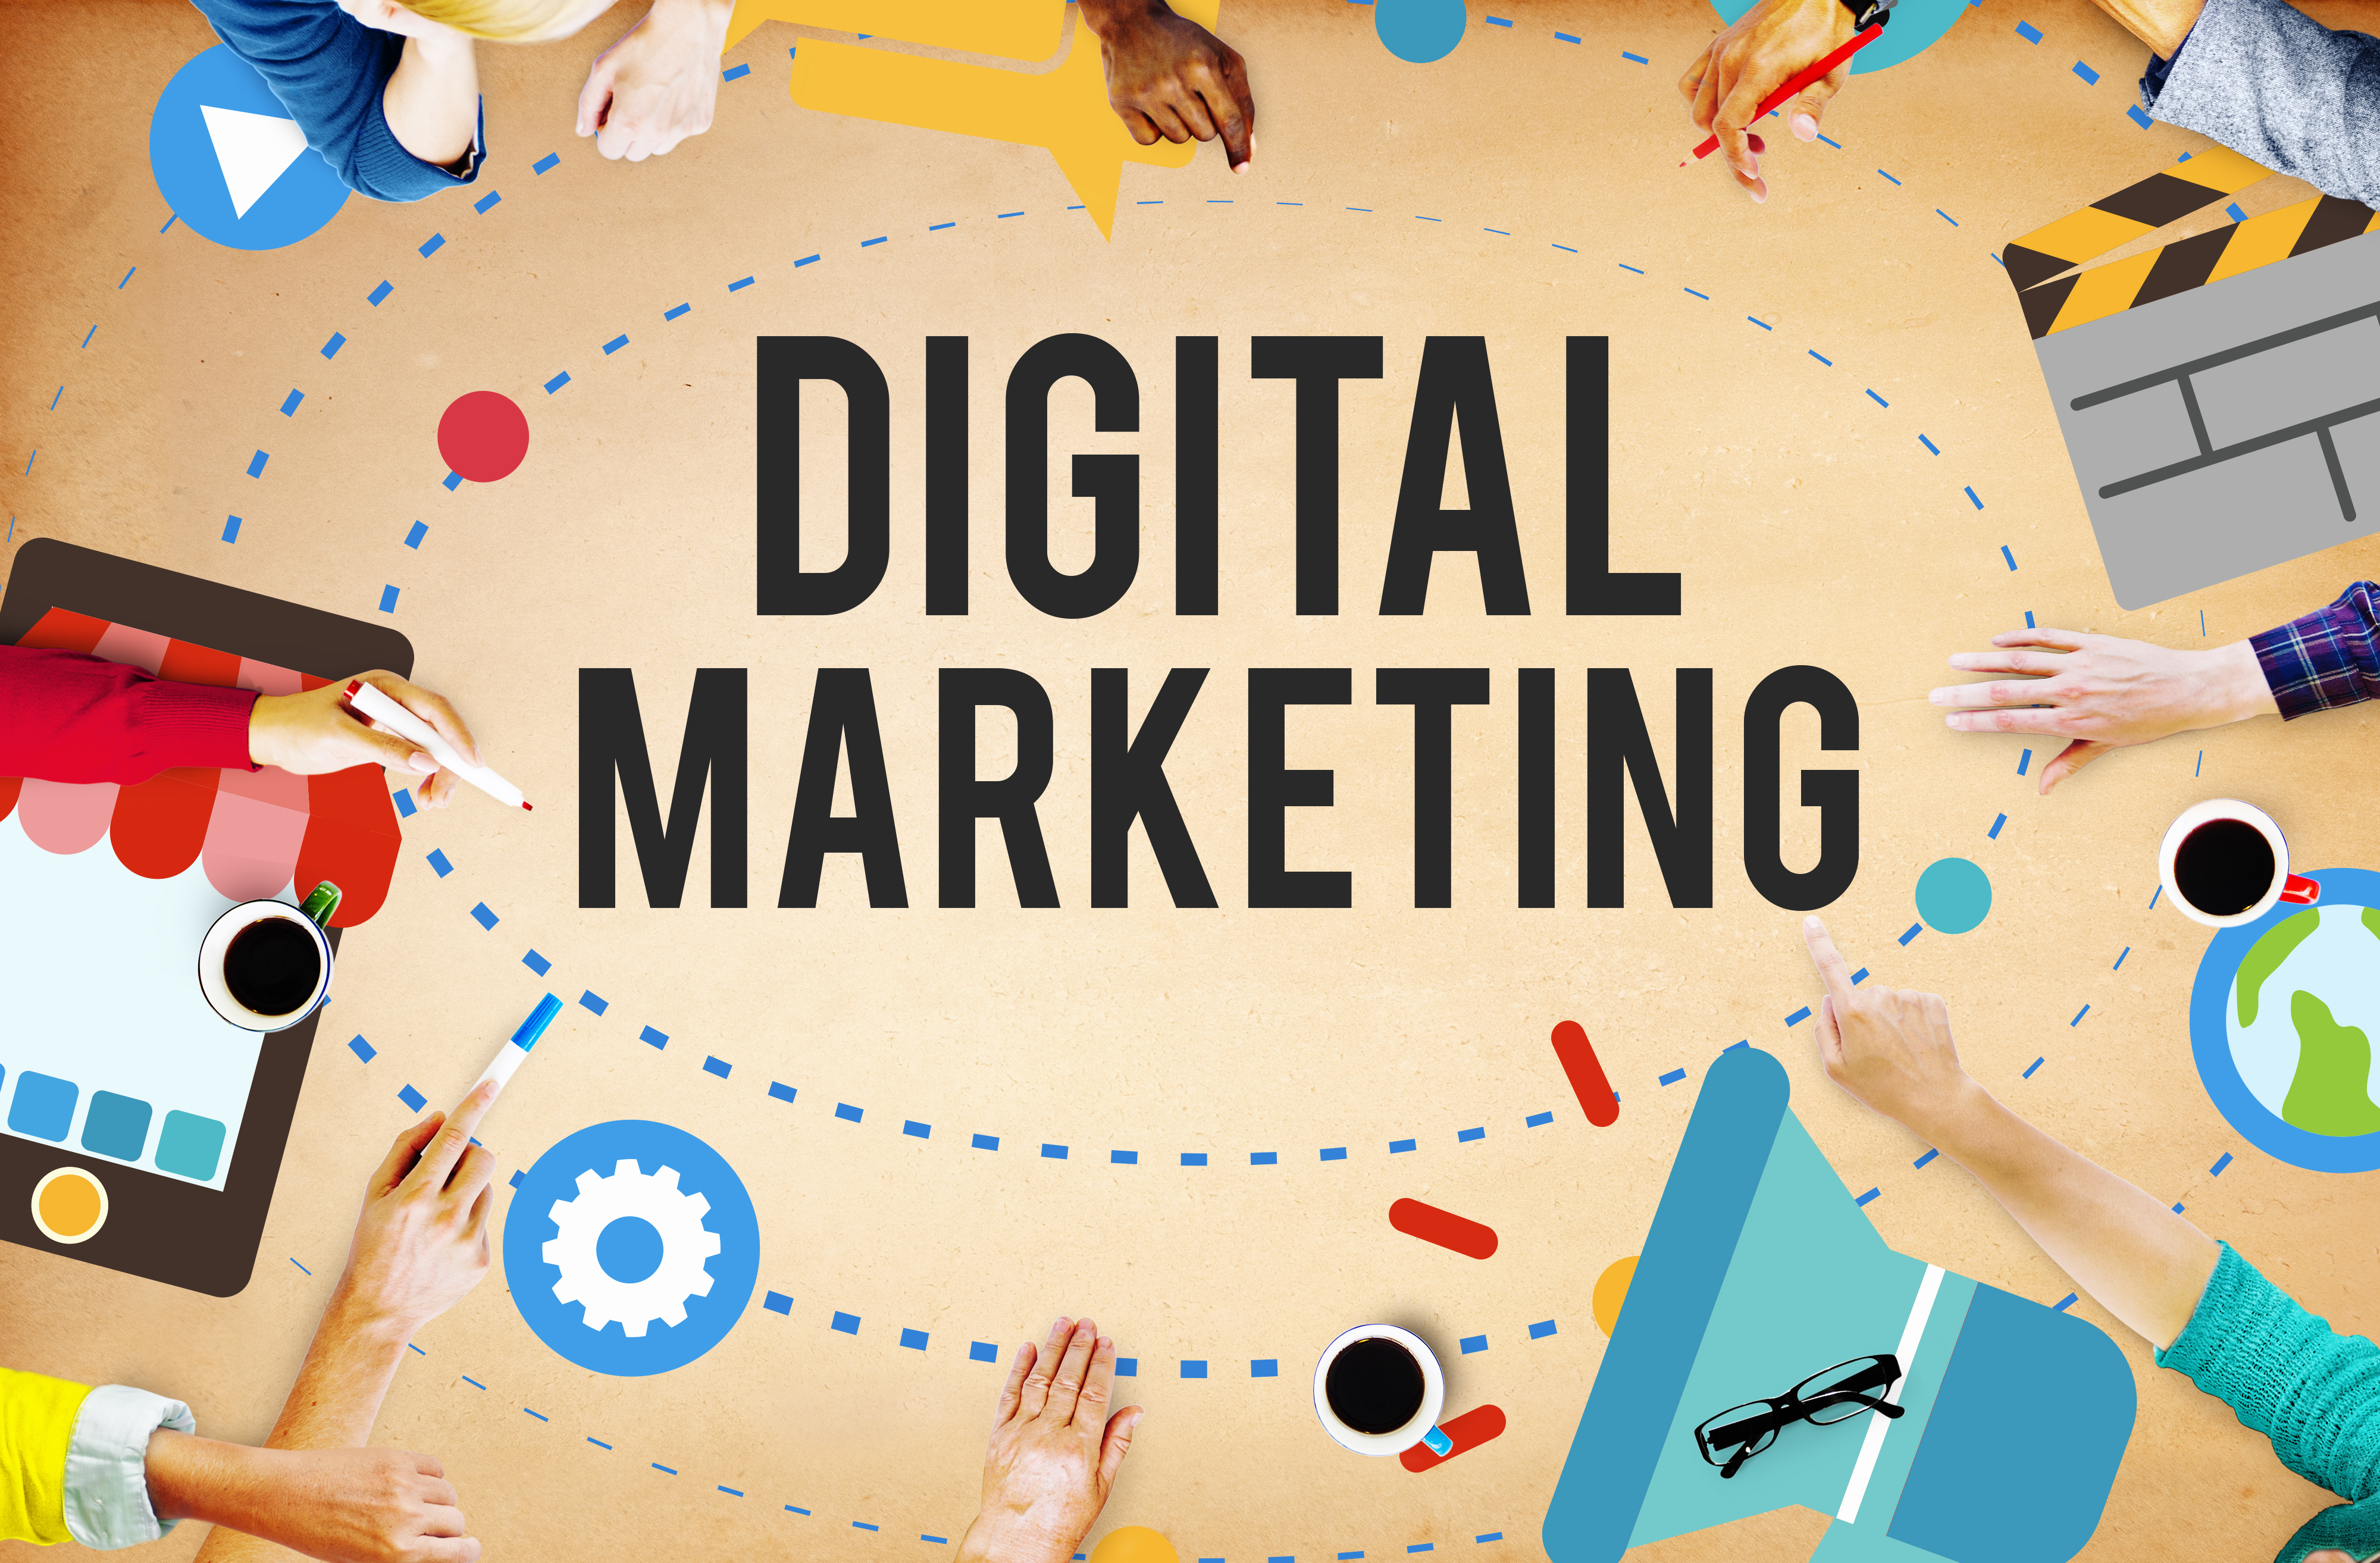 MOST EFFECTIVE DIGITAL MARKETING CHANNELS